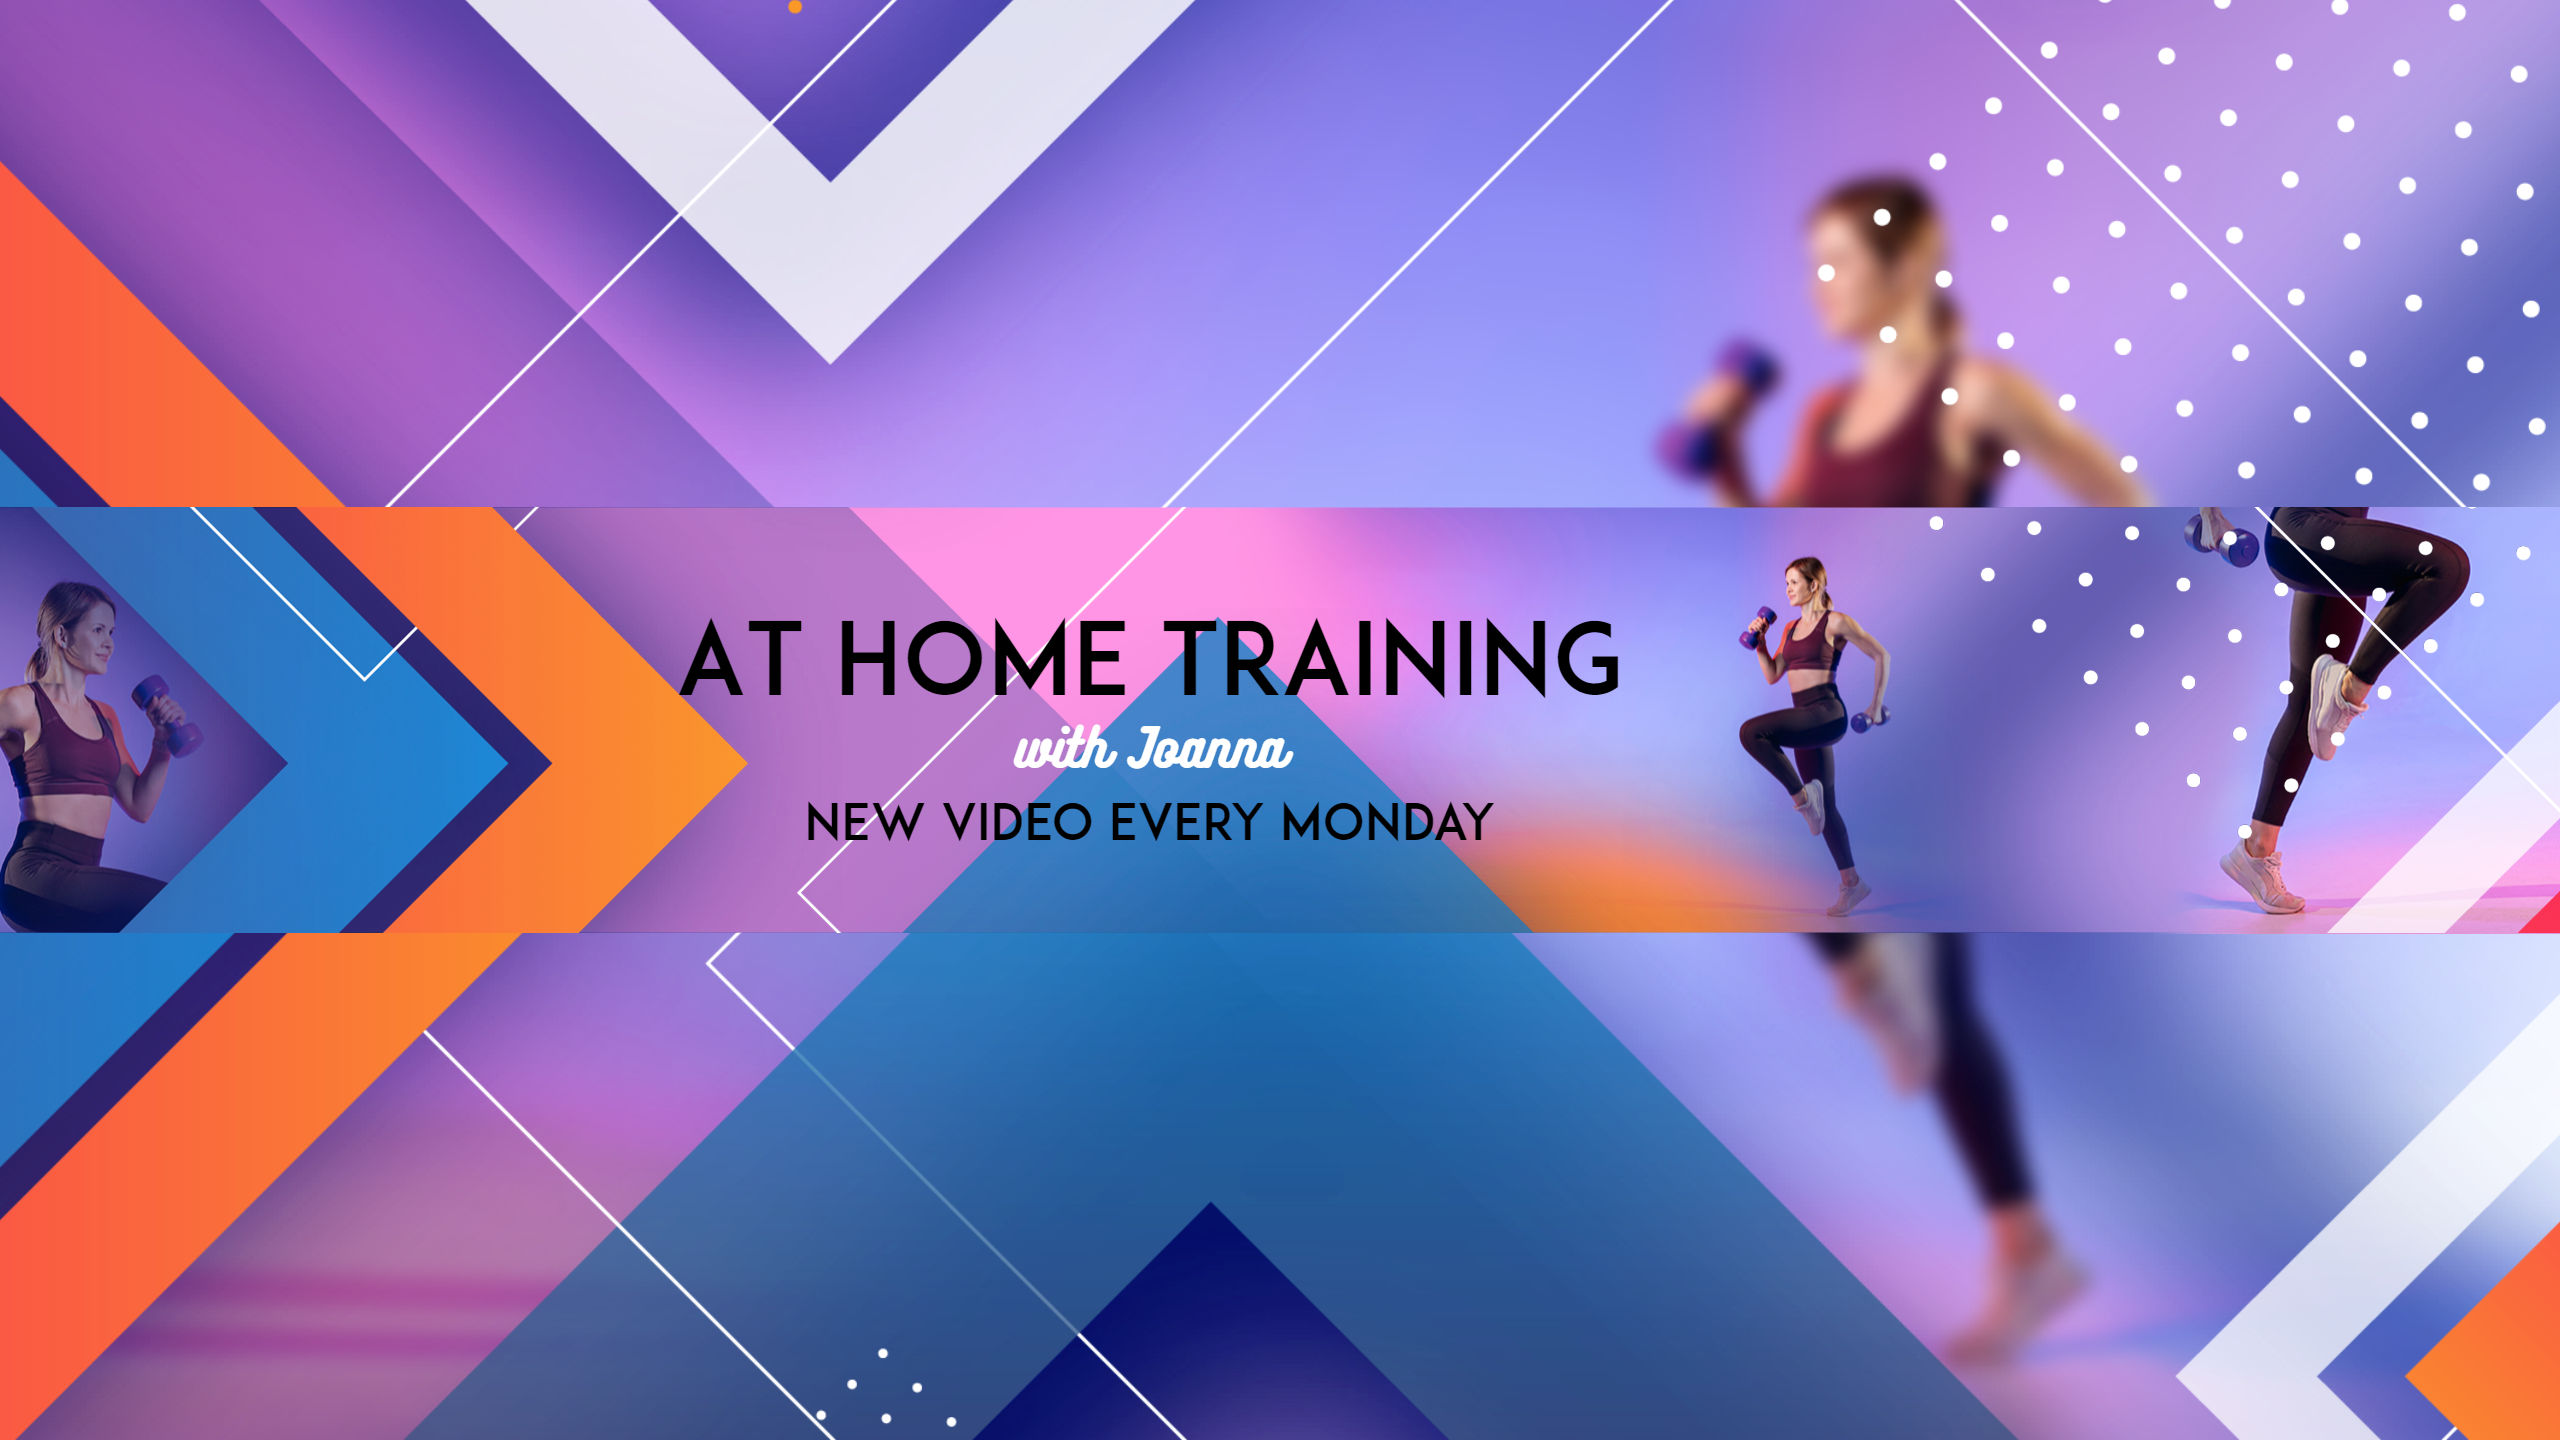 Youtube Fitness Training At Home Design  Template